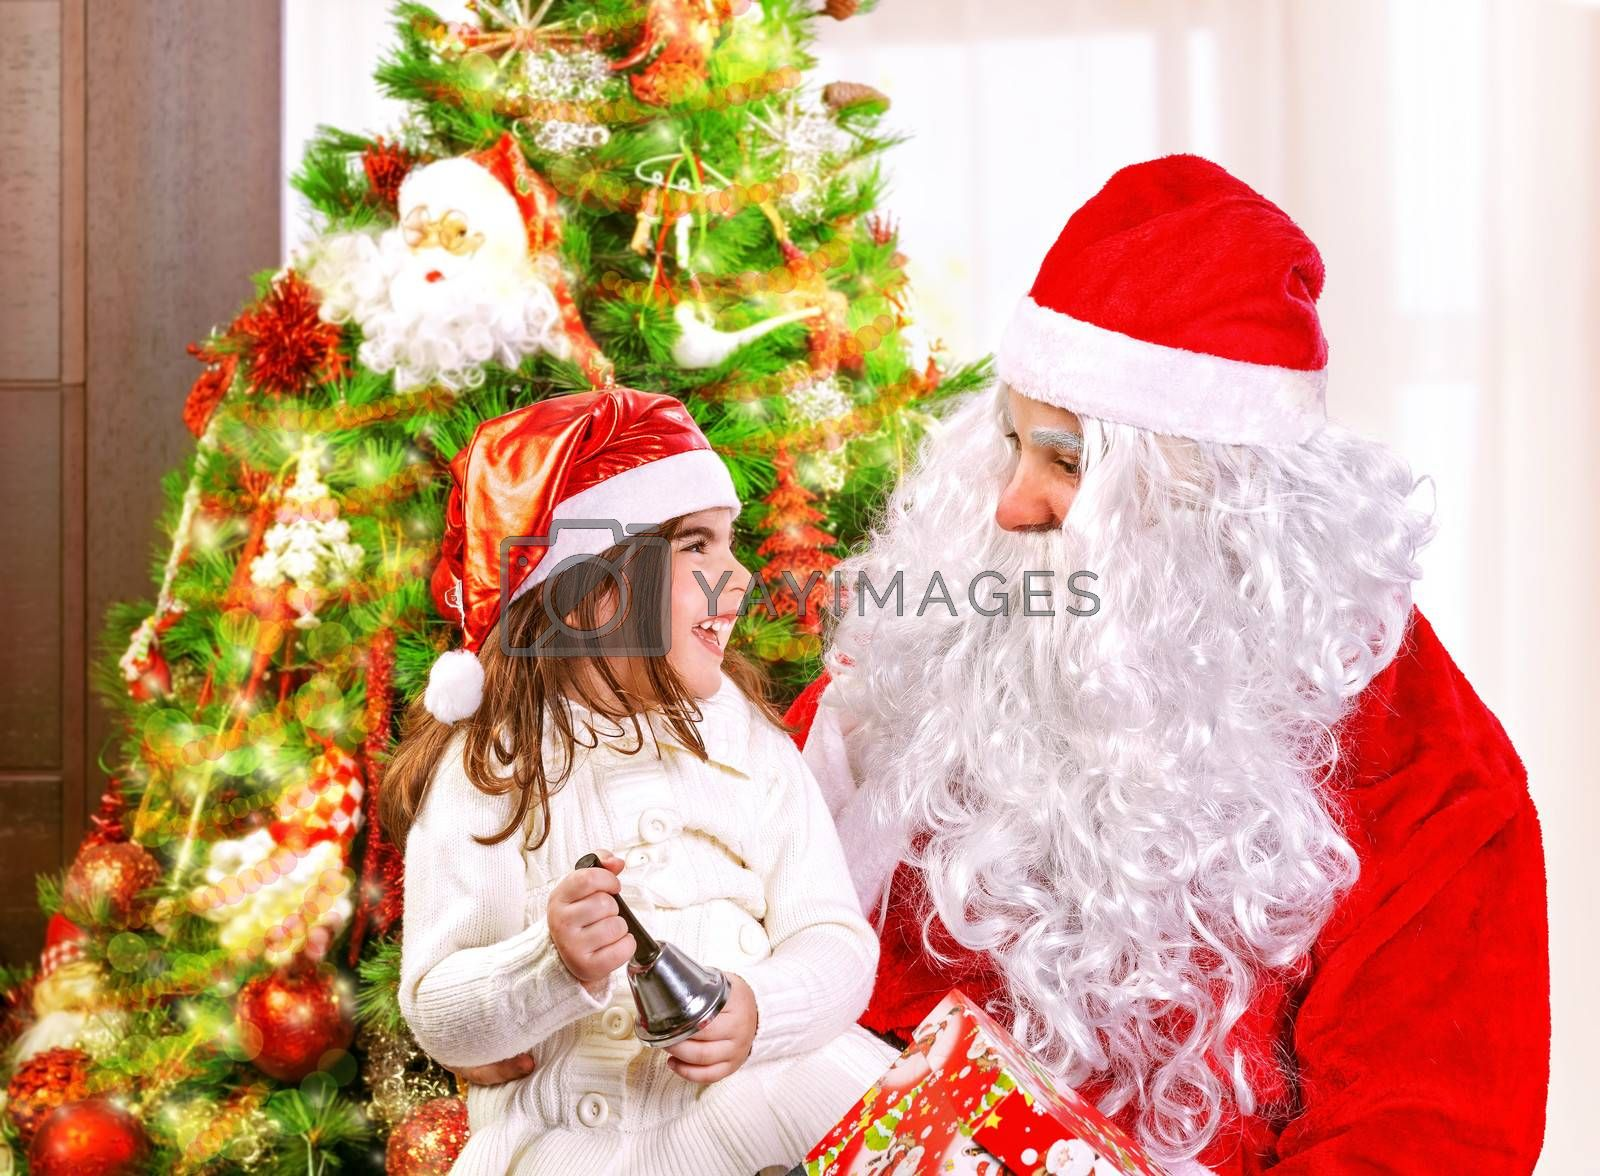 Cute little girl with Santa Claus near Christmas tree at home, having fun, laughing and ringing festive bell, enjoying New Year party